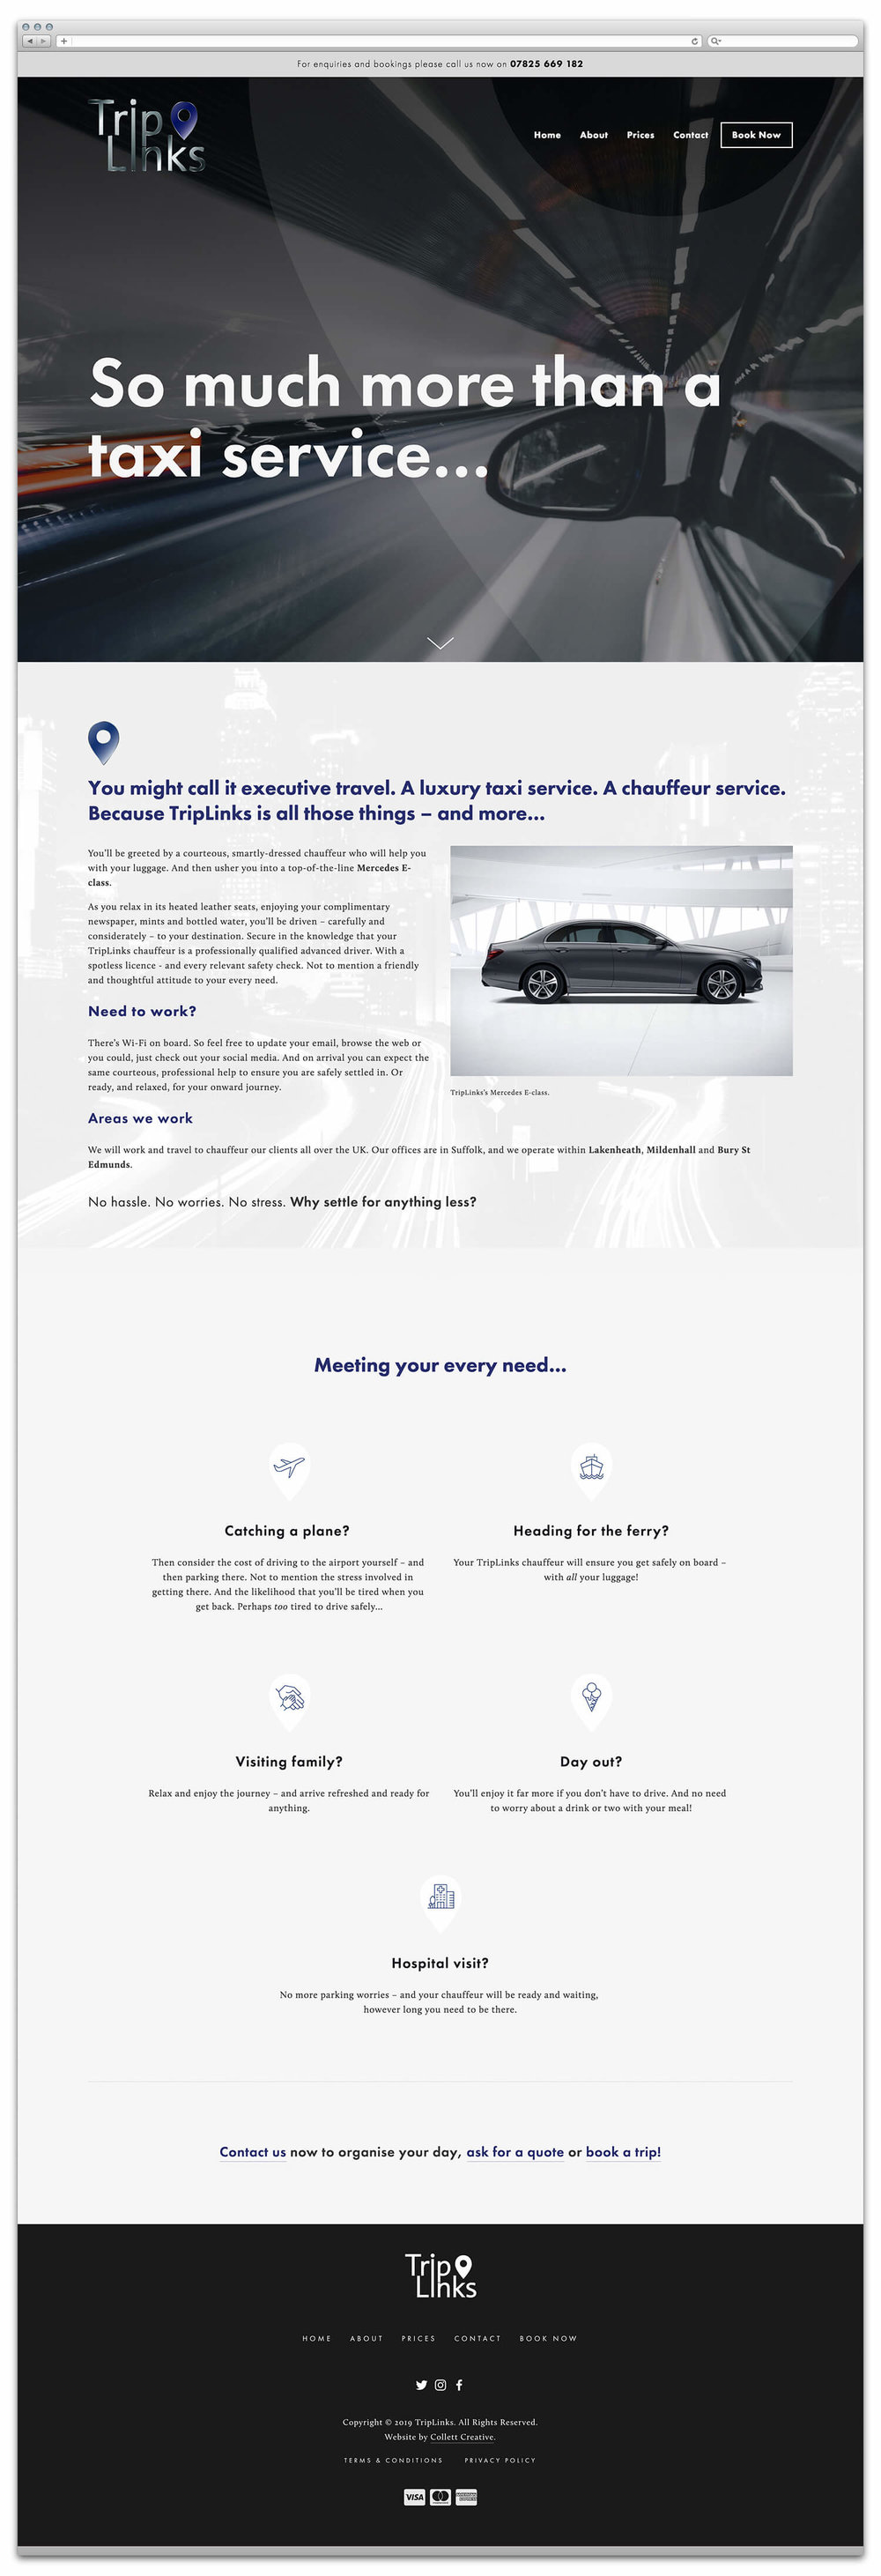 The TripLinks homepage website design (viewed in a browser) at the time it launched.